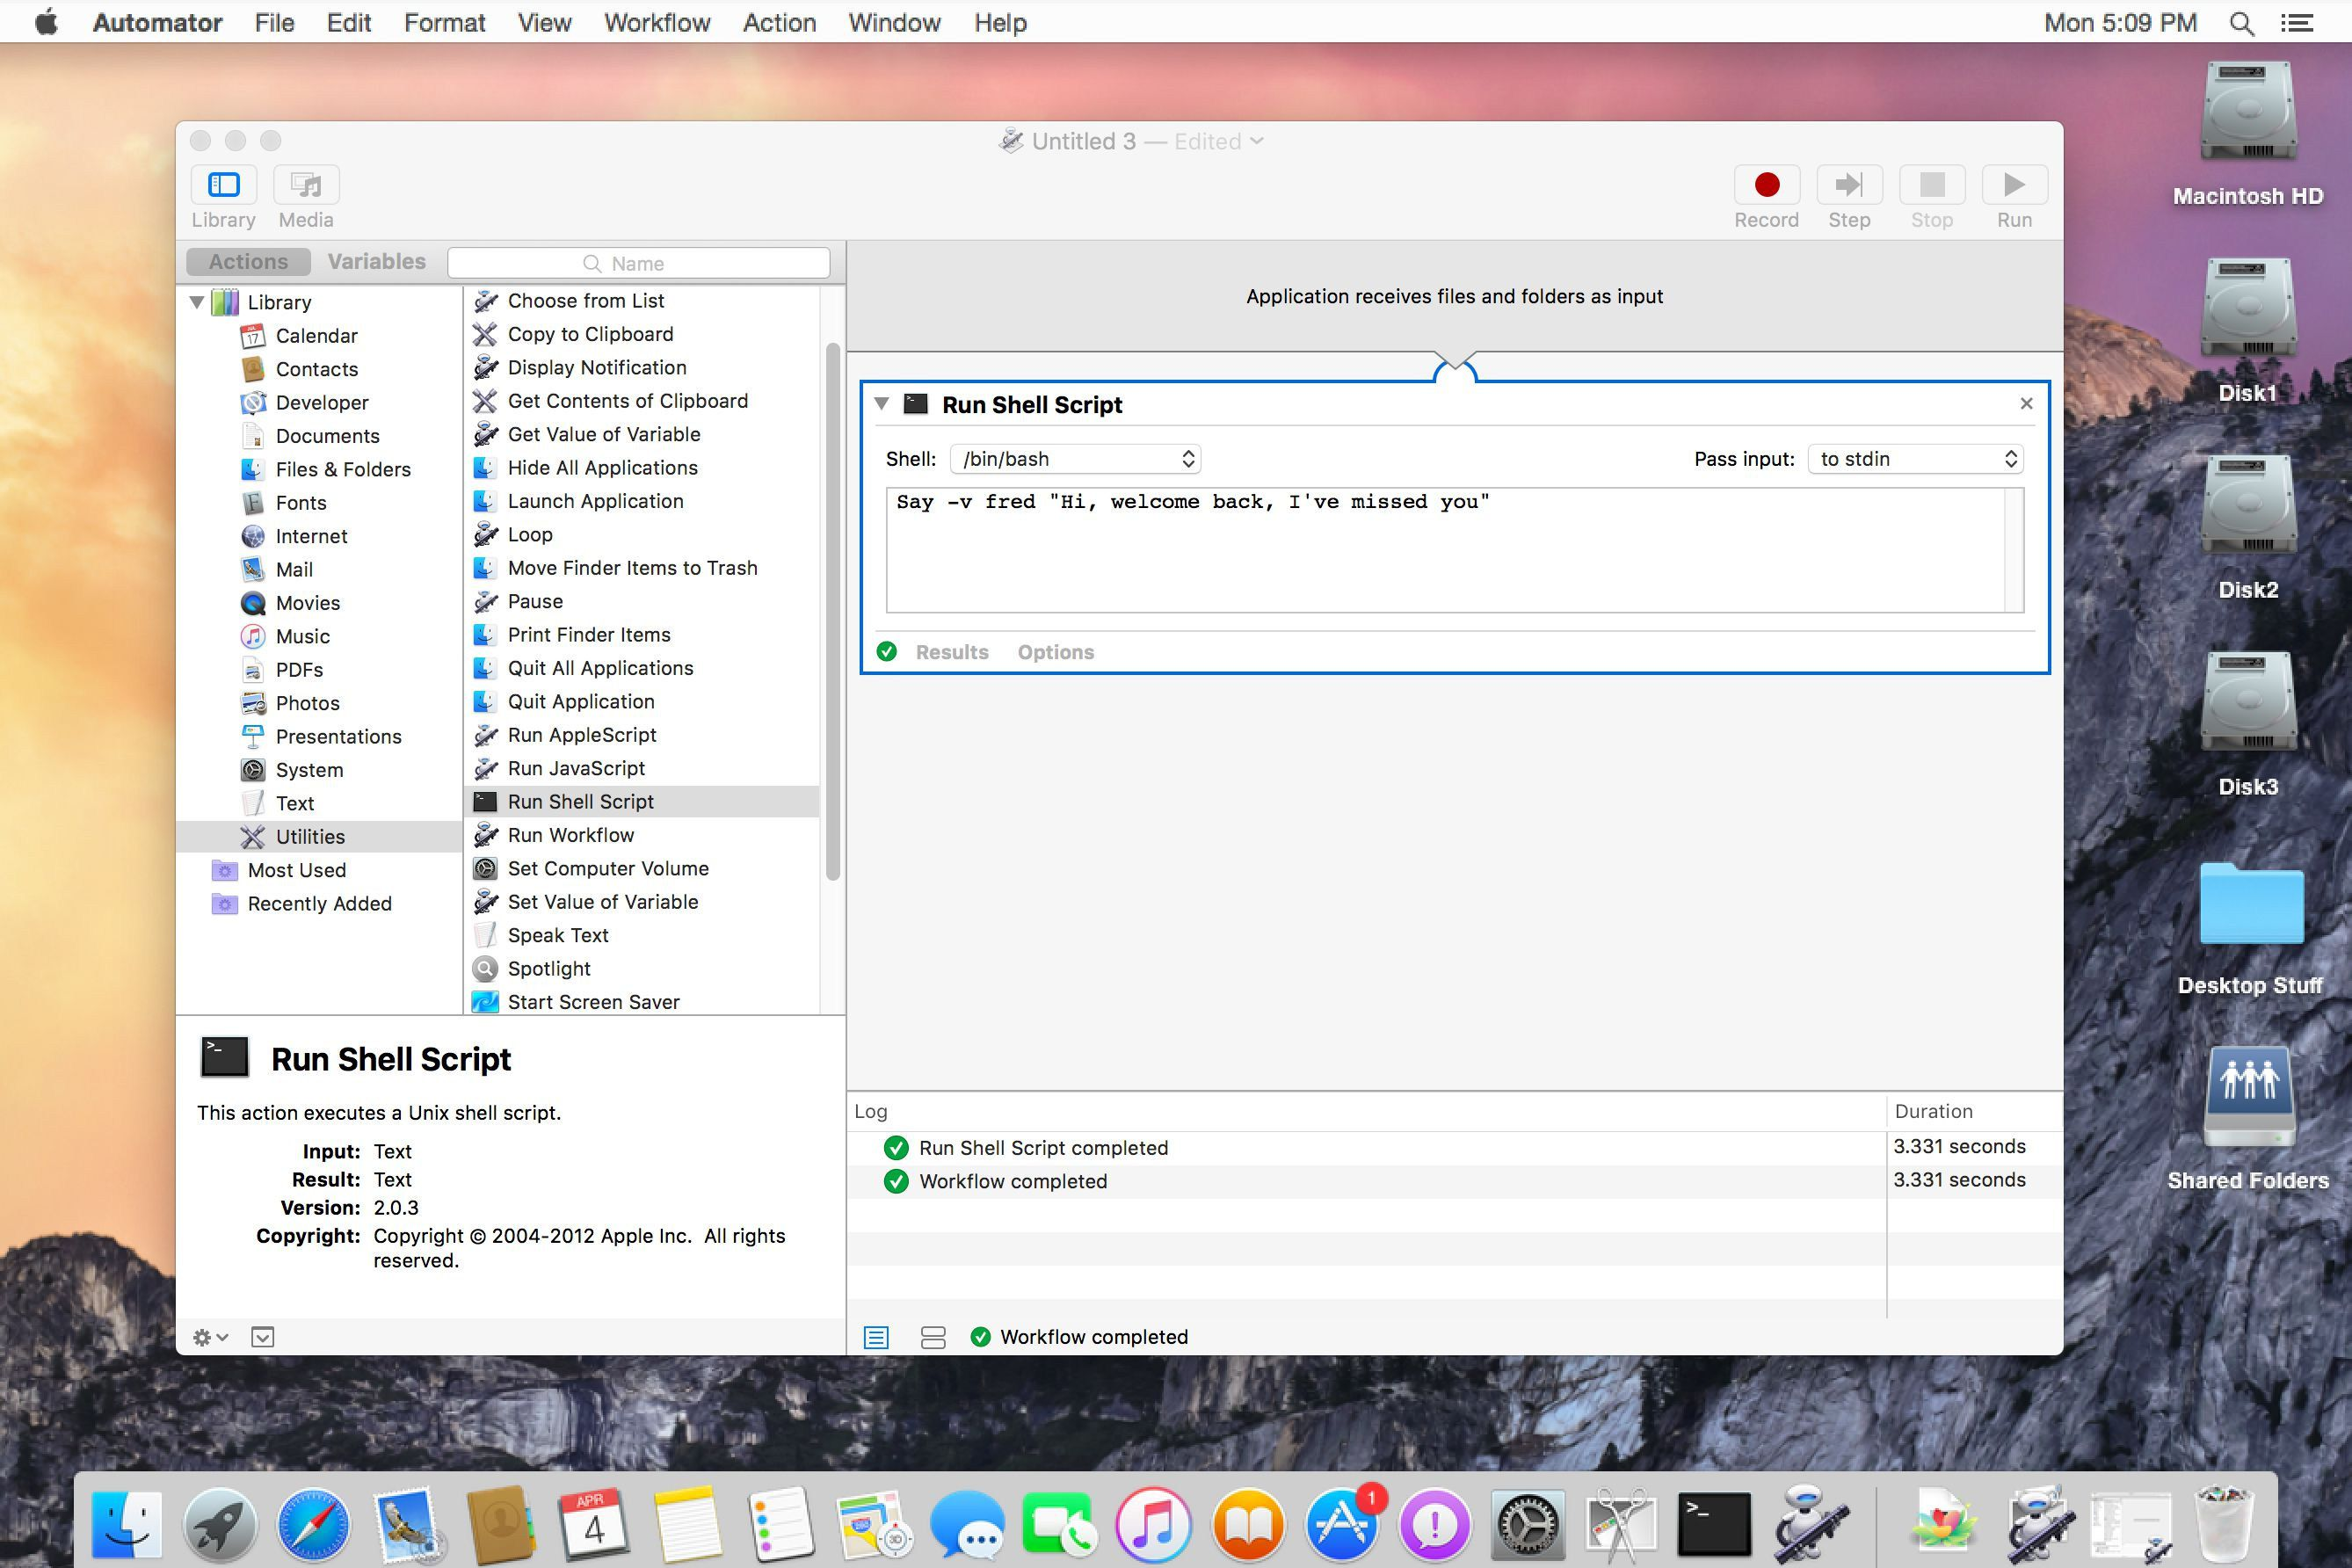 How to Add Startup Sounds to Your Mac